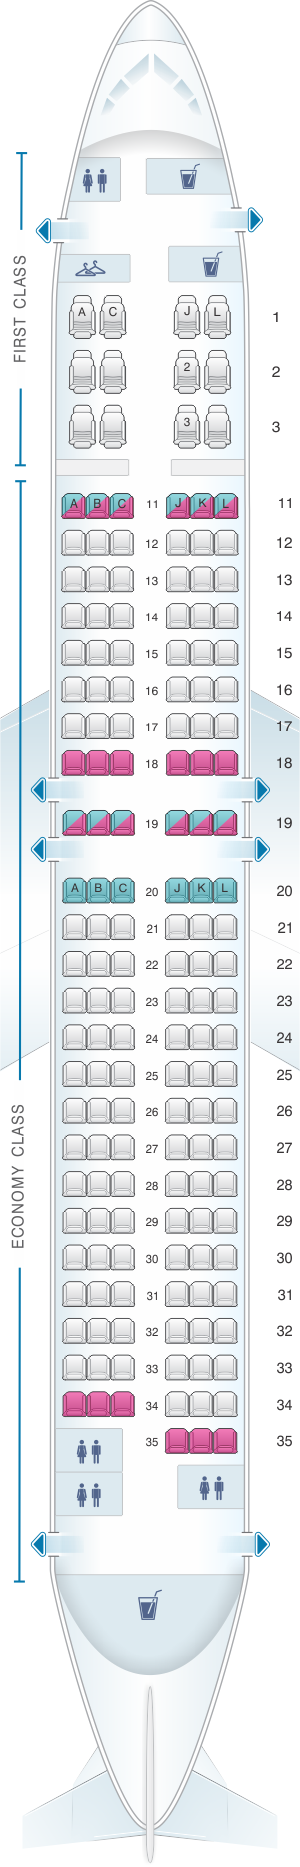 Seat map for Air China Boeing B737 800 (159PAX)